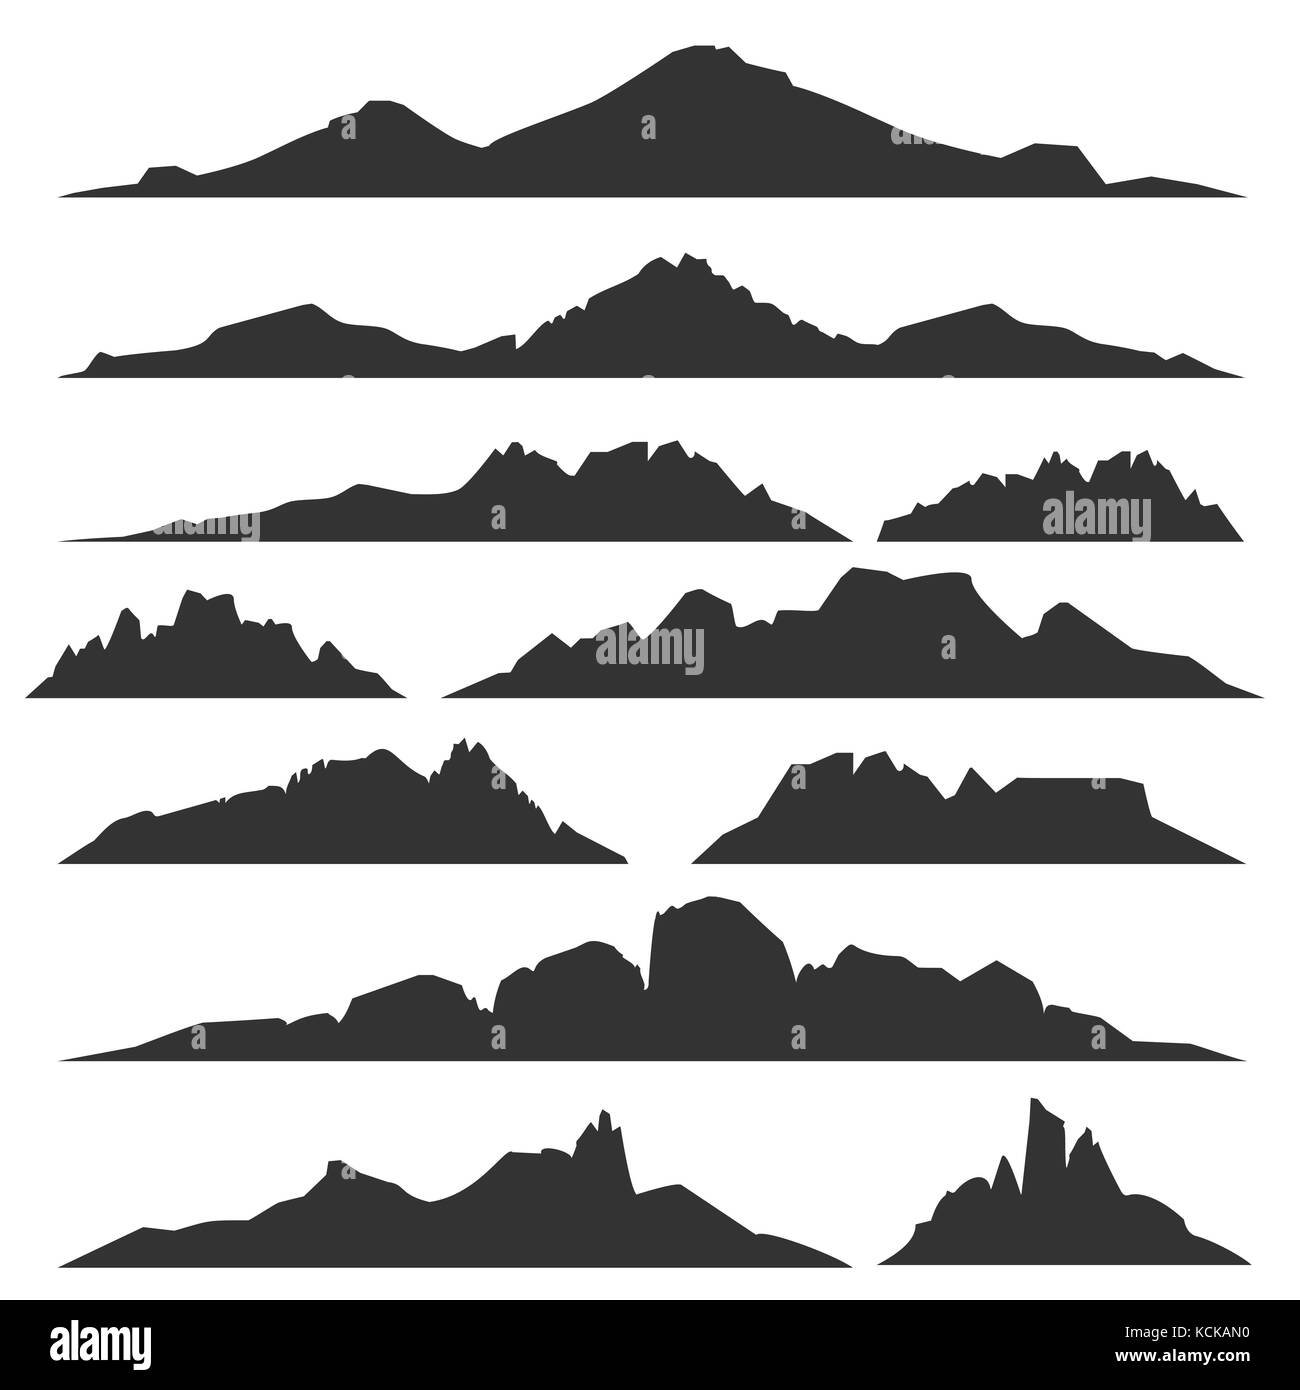 Amazing mountain silhouette vector free images